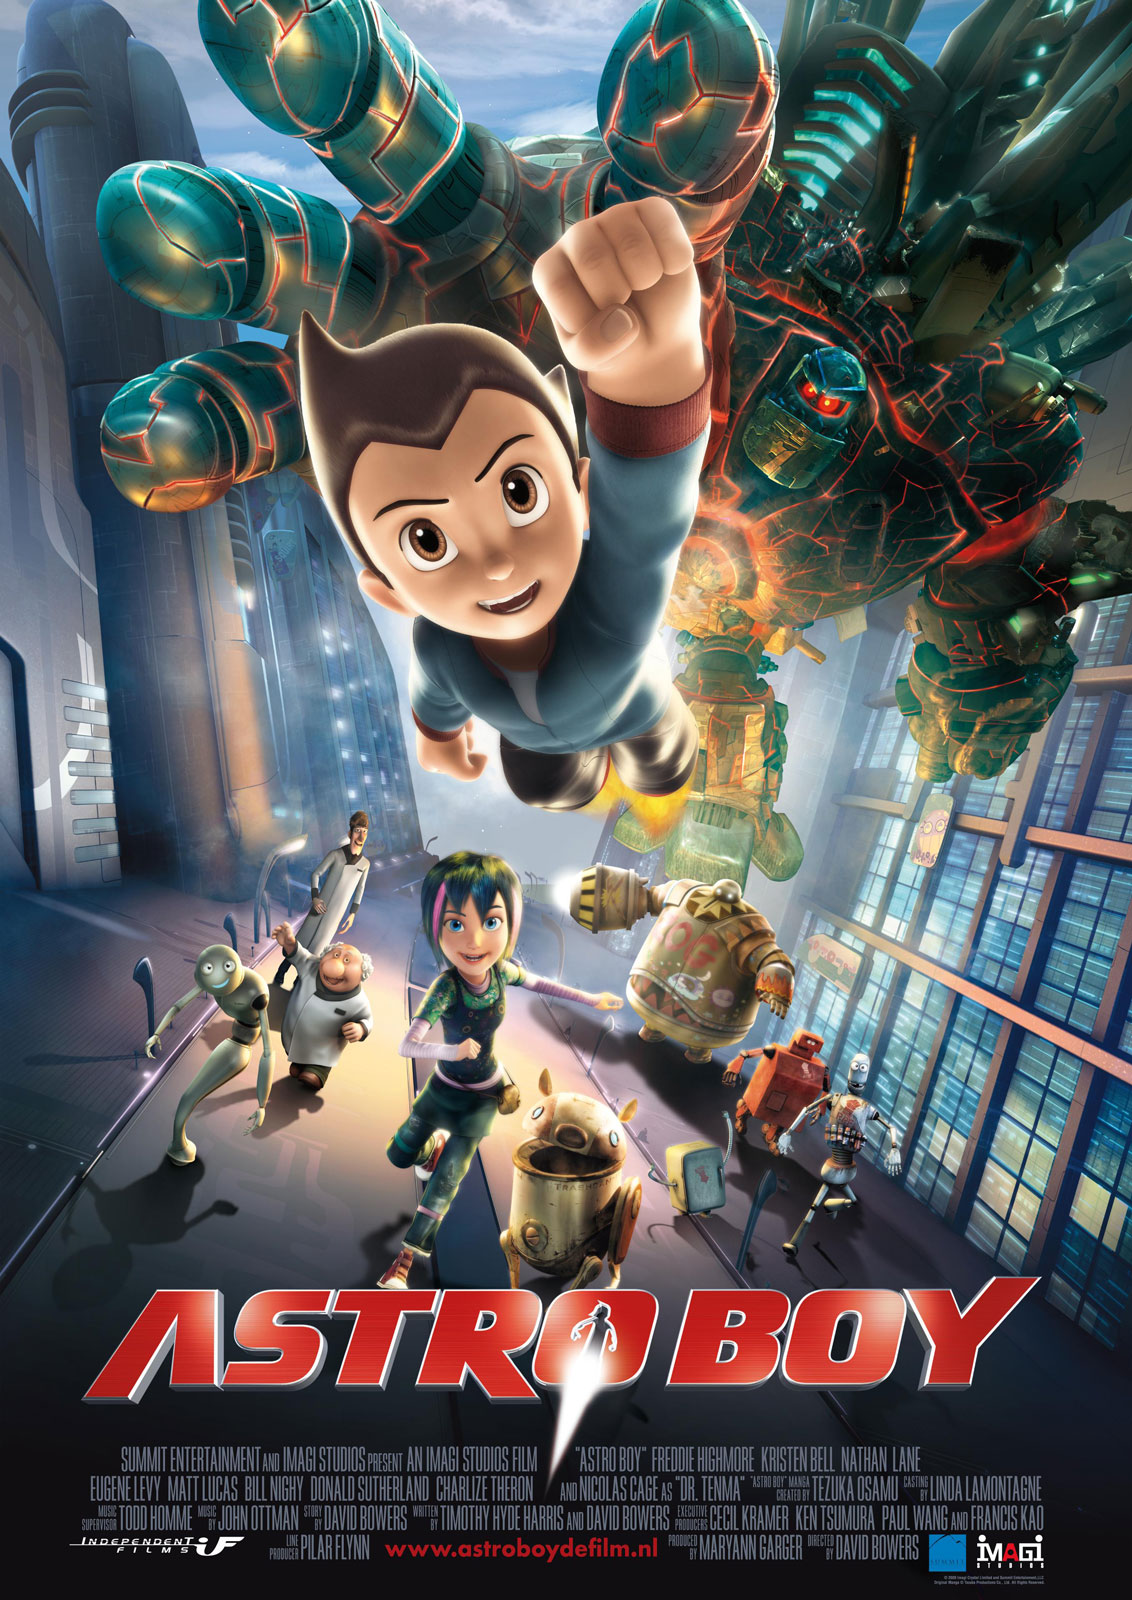 Astro Boy (2009; animated)